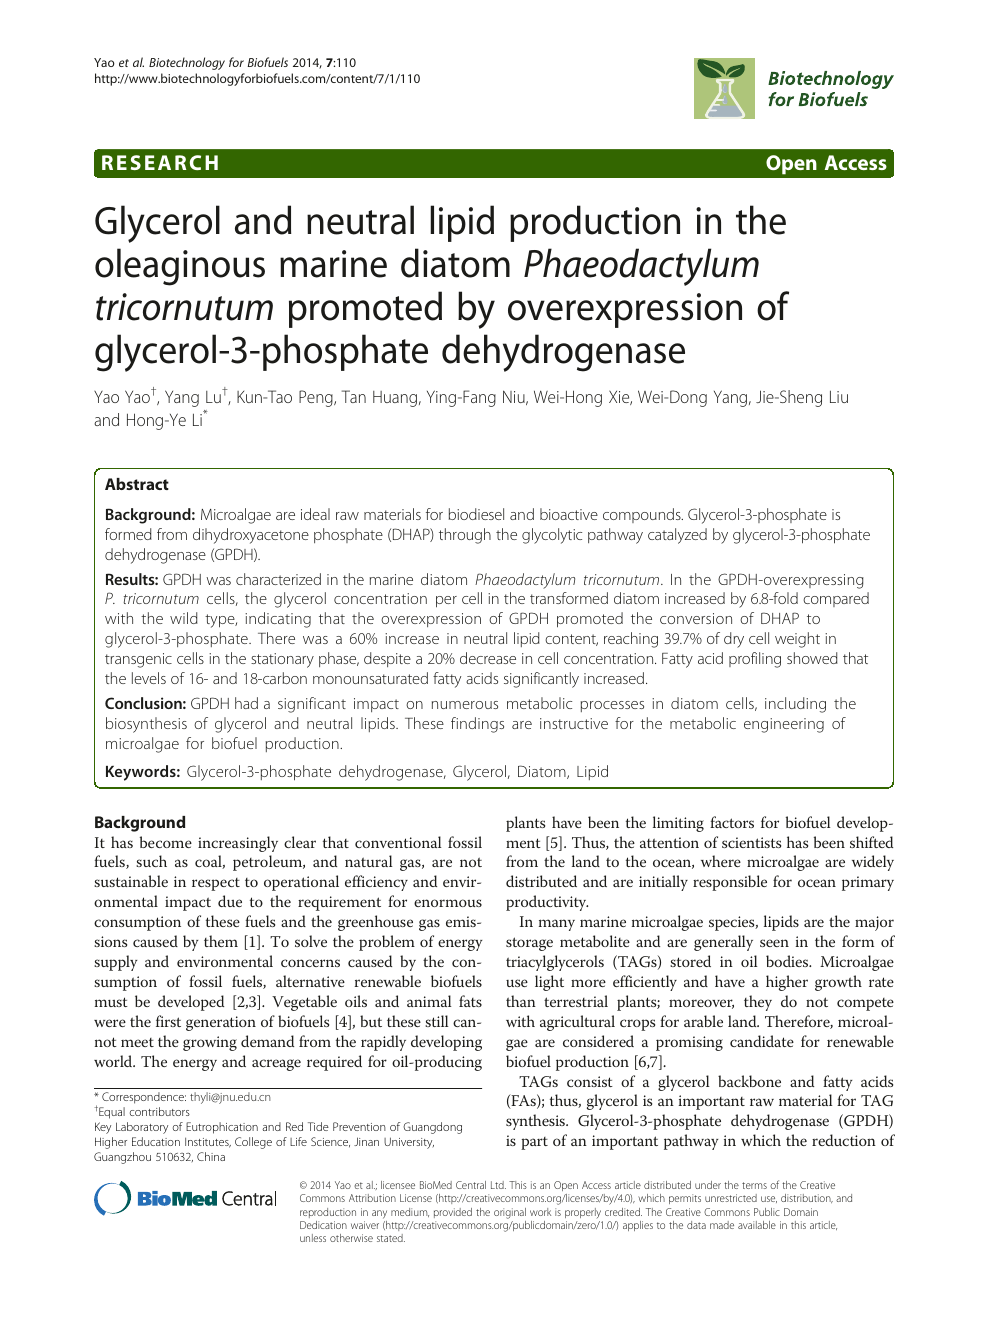 Glycerol and neutral lipid production in the oleaginous